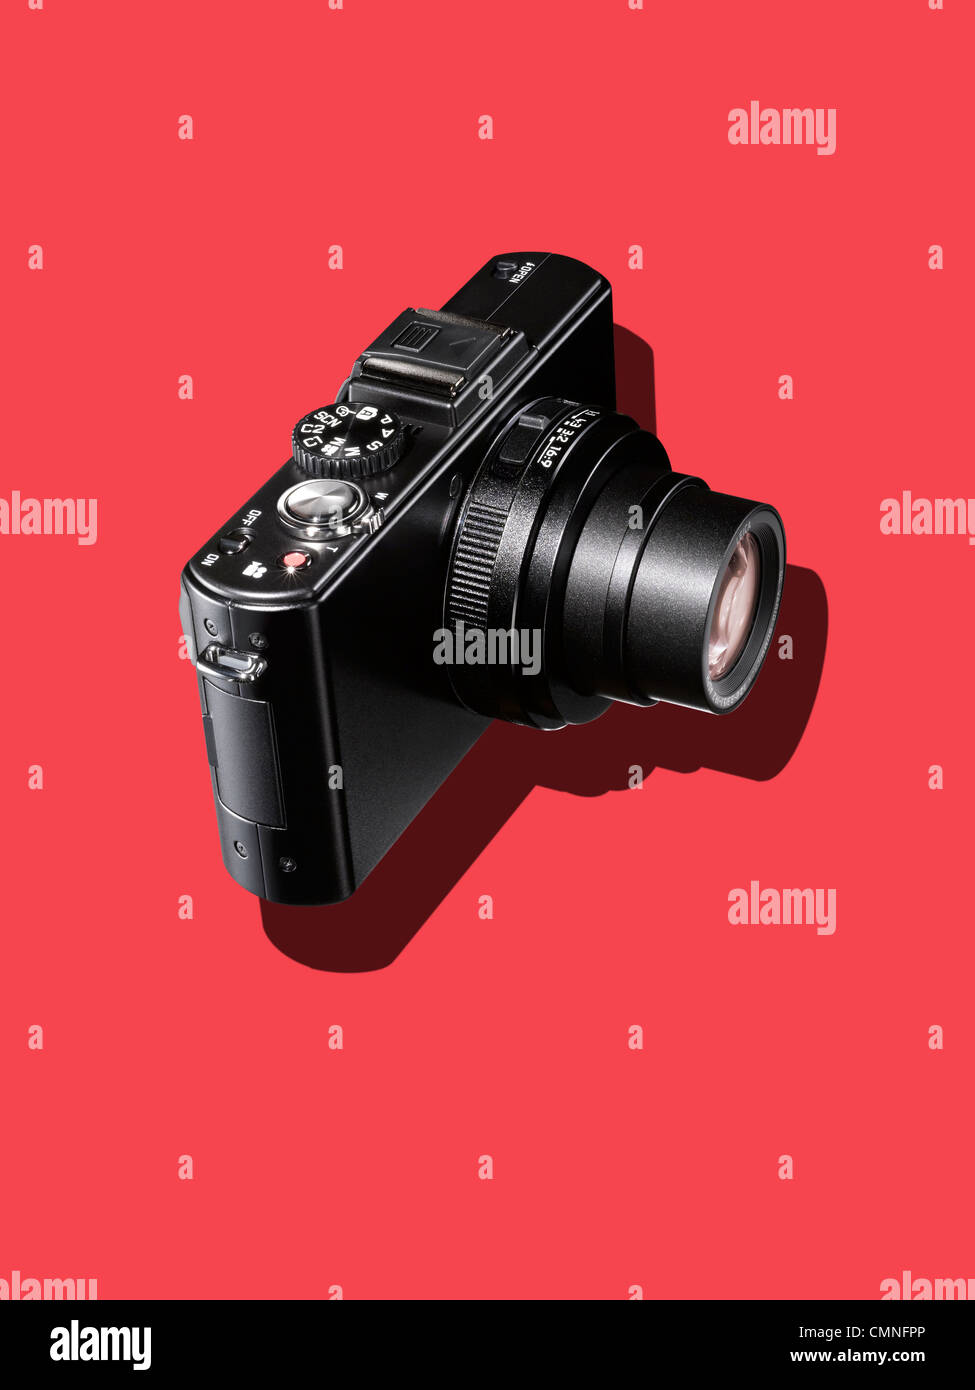 A black camera on a red background - Stock Image